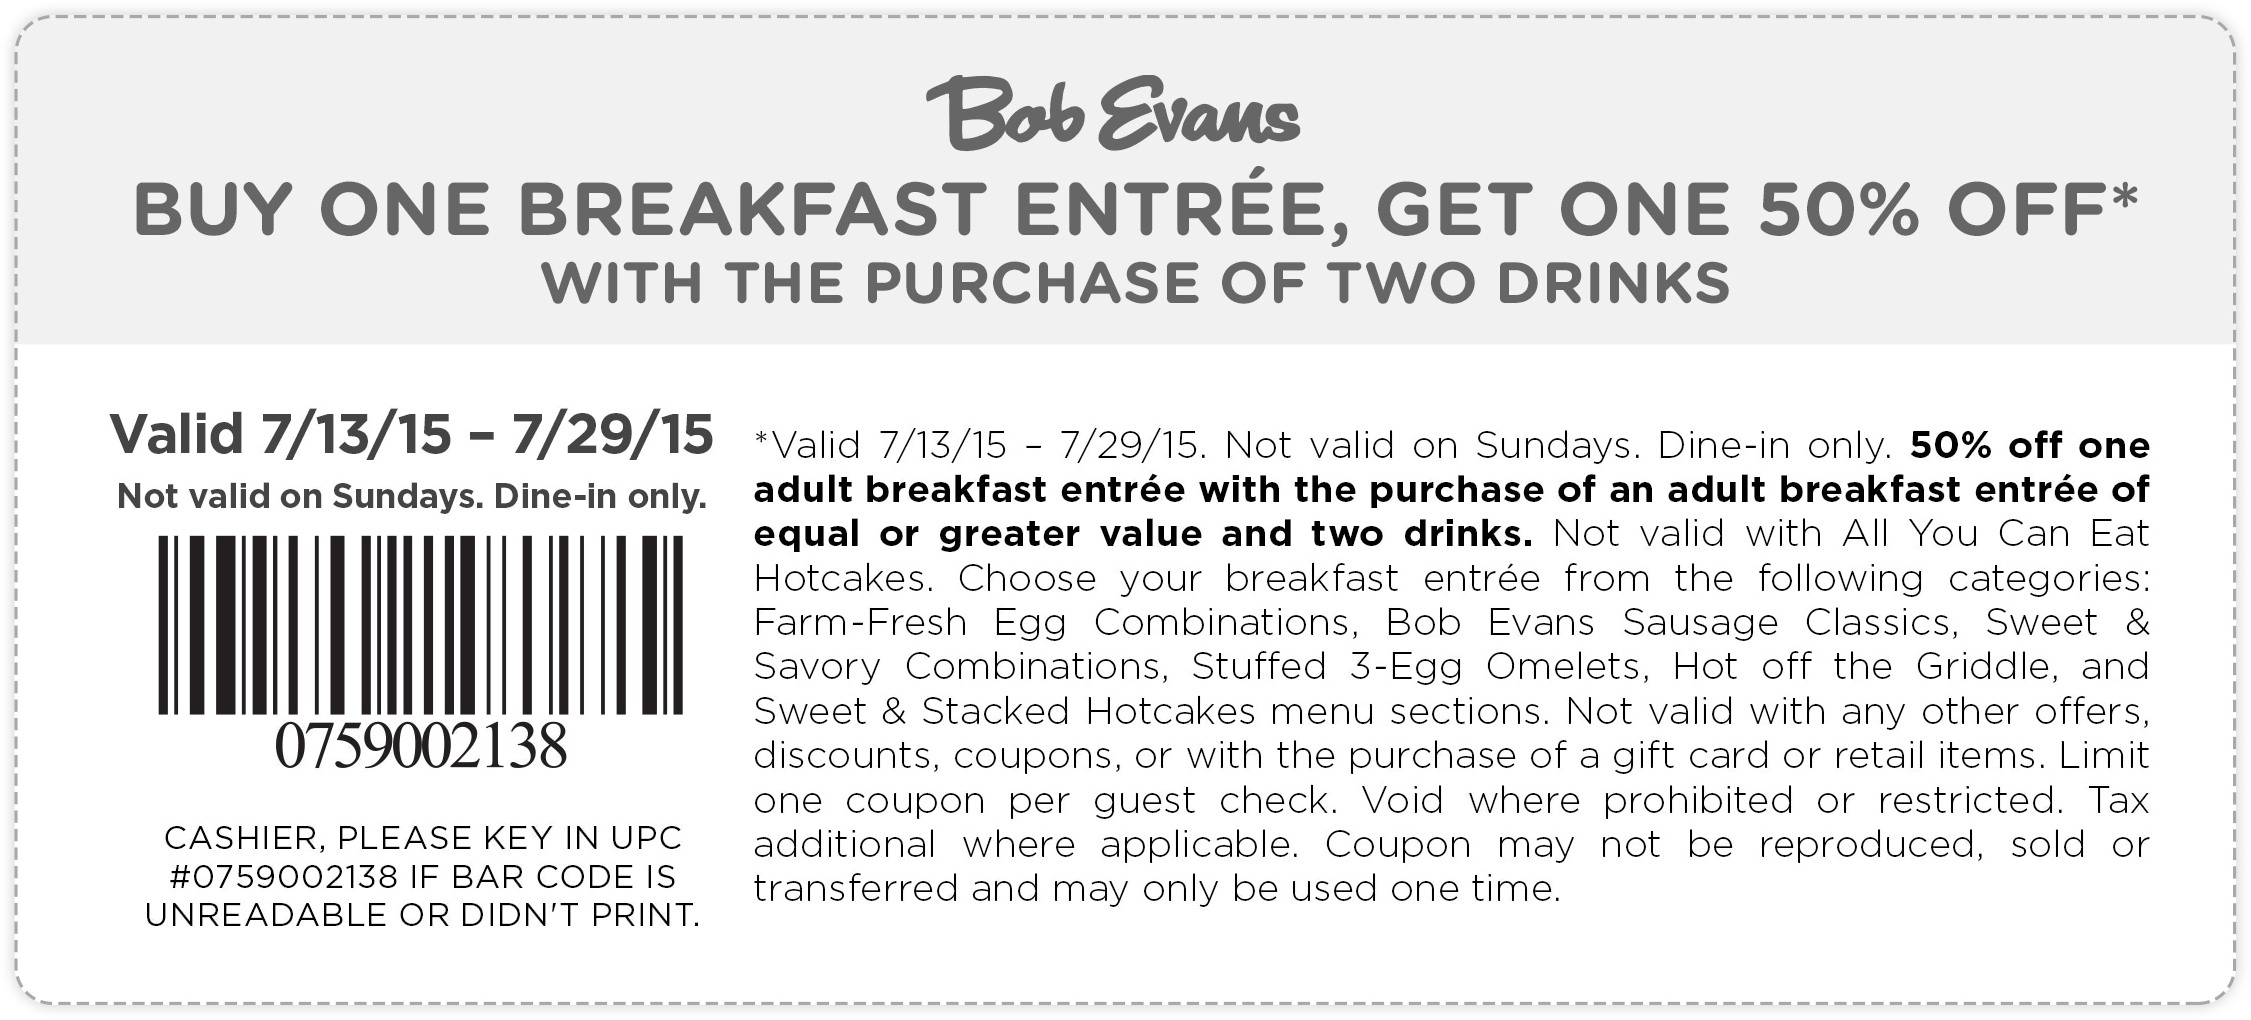 Bob Evans Coupon July 2017 Second breakfast entree 50% off at Bob Evans